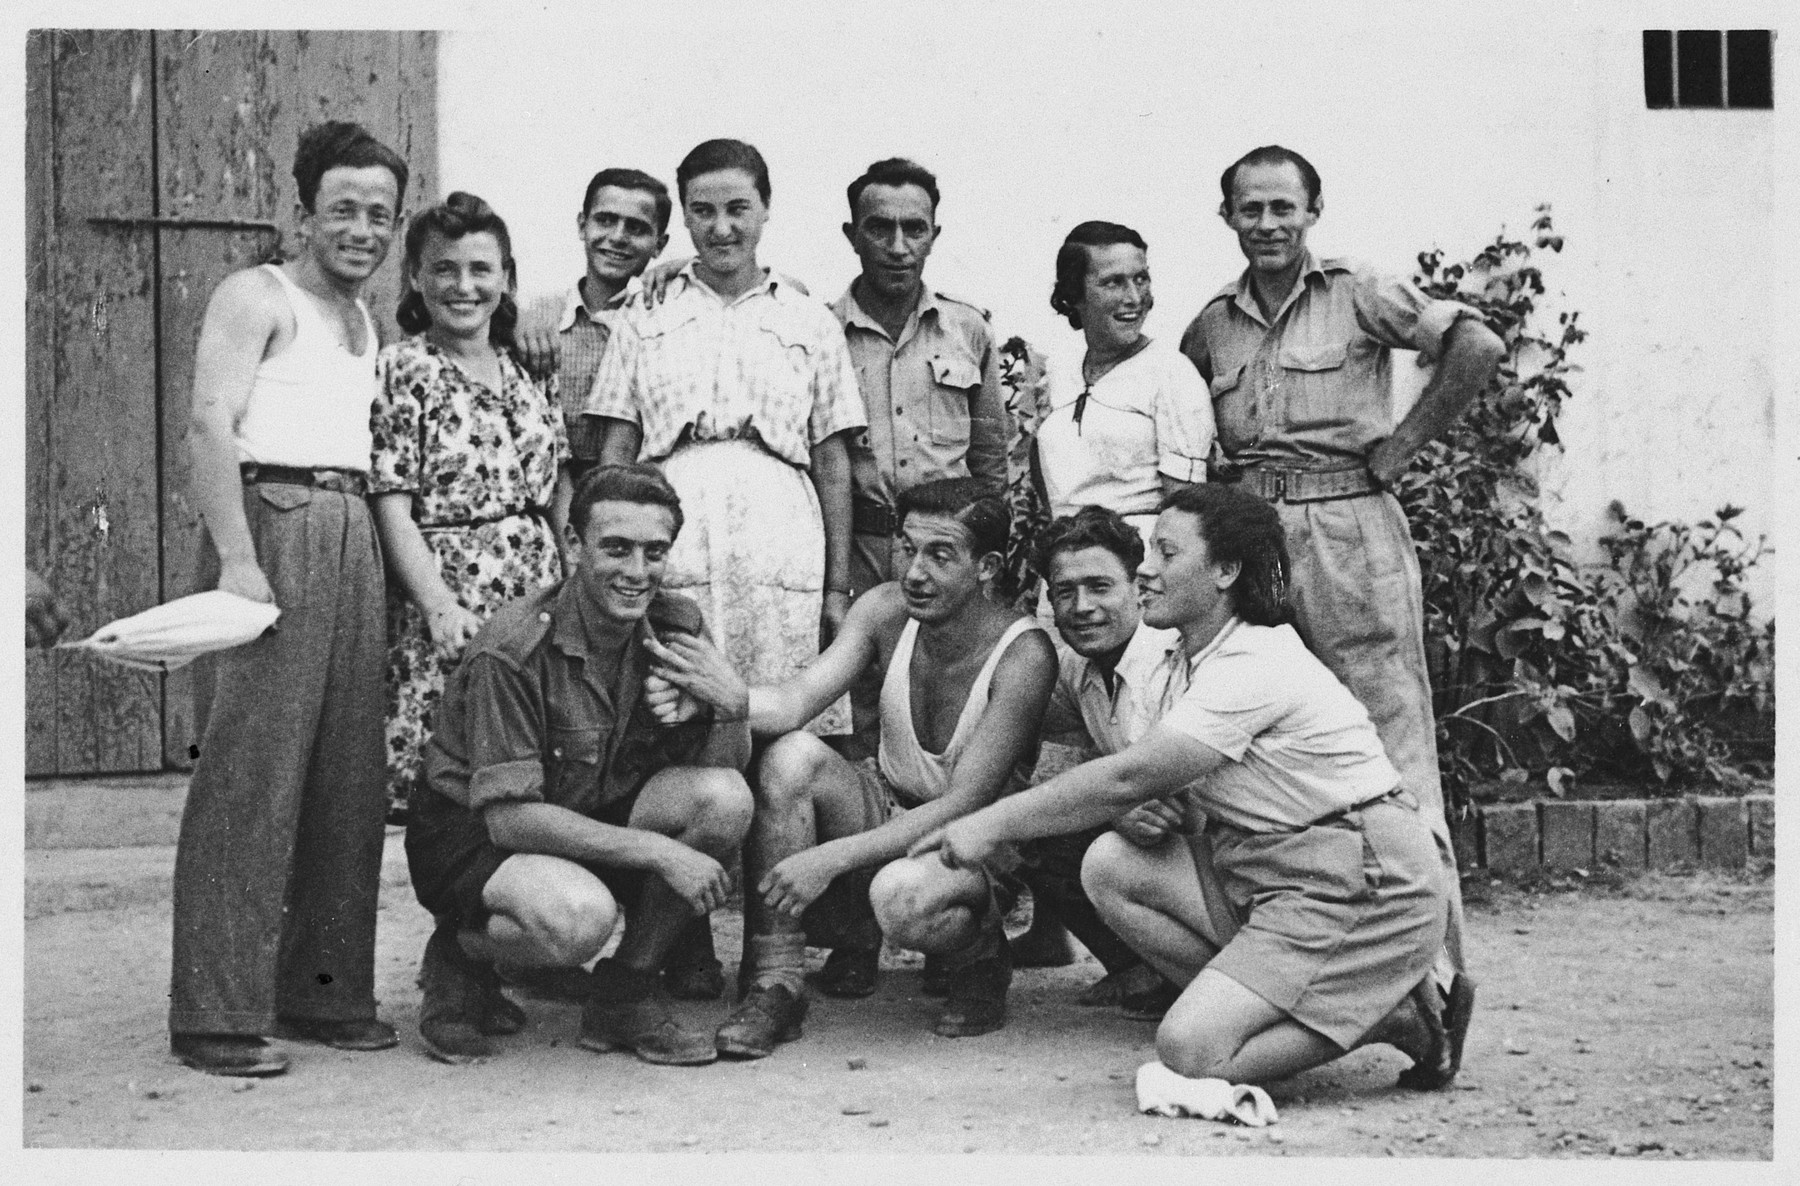 Group portrait of members of Kibbutz Maestro in Venice.  Boris Shub is pictured on the lower left.